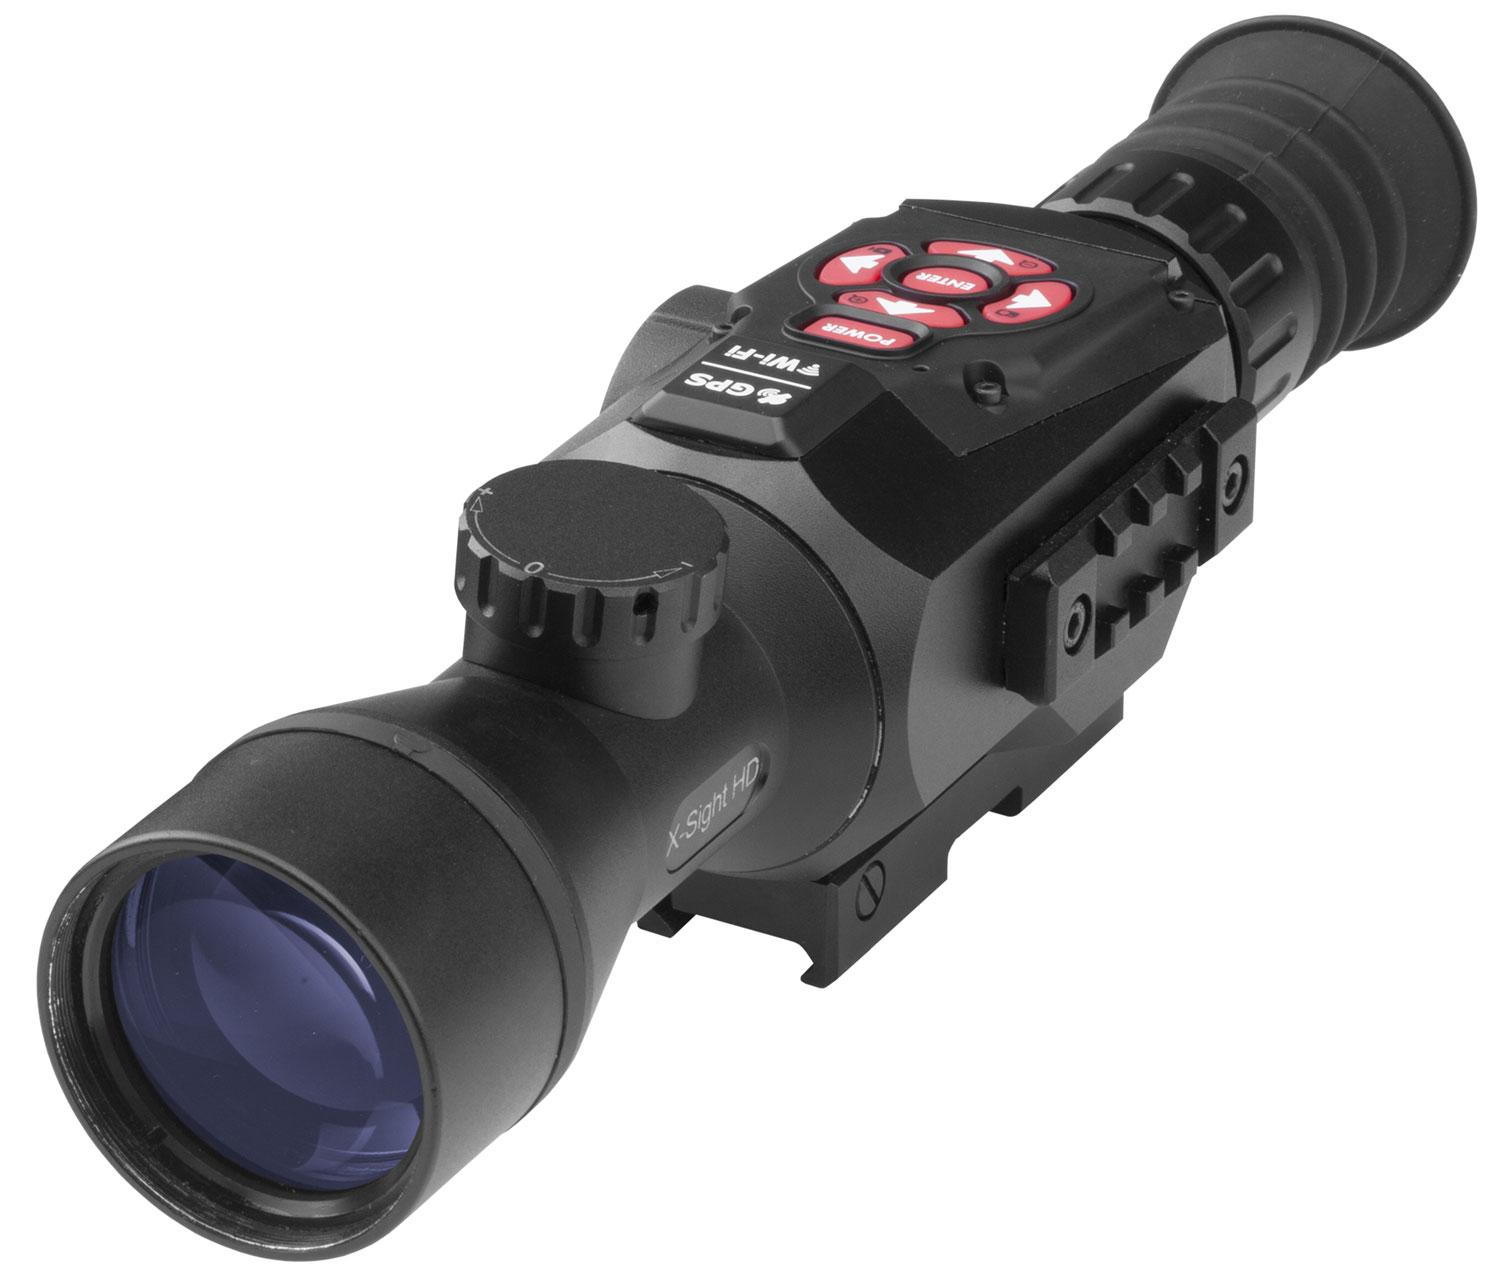 Atn Dgwsxs314z X- Sight Ii Scope Smart Hd Optics Gen 3- 14x 50mm 460 Ft @ 1000 Yds Fov